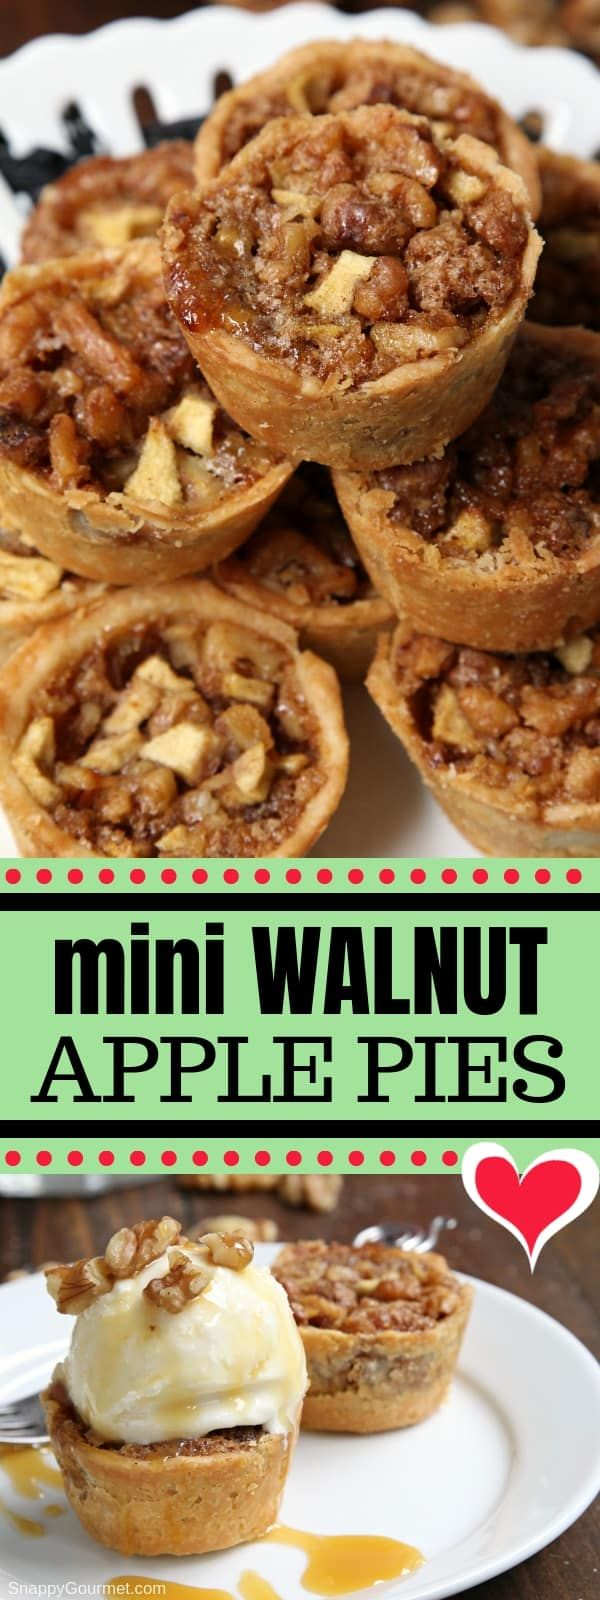 Mini Walnut Apple Pies - easy muffin tin apple pie recipe made in mini muffin pans. Best bite-size Thanksgiving dessert! #Thanksgiving #Pie #ApplePie #SnappyGourmet #dessert #Walnuts #recipes #cinnamon via @snappygourmet #applepie